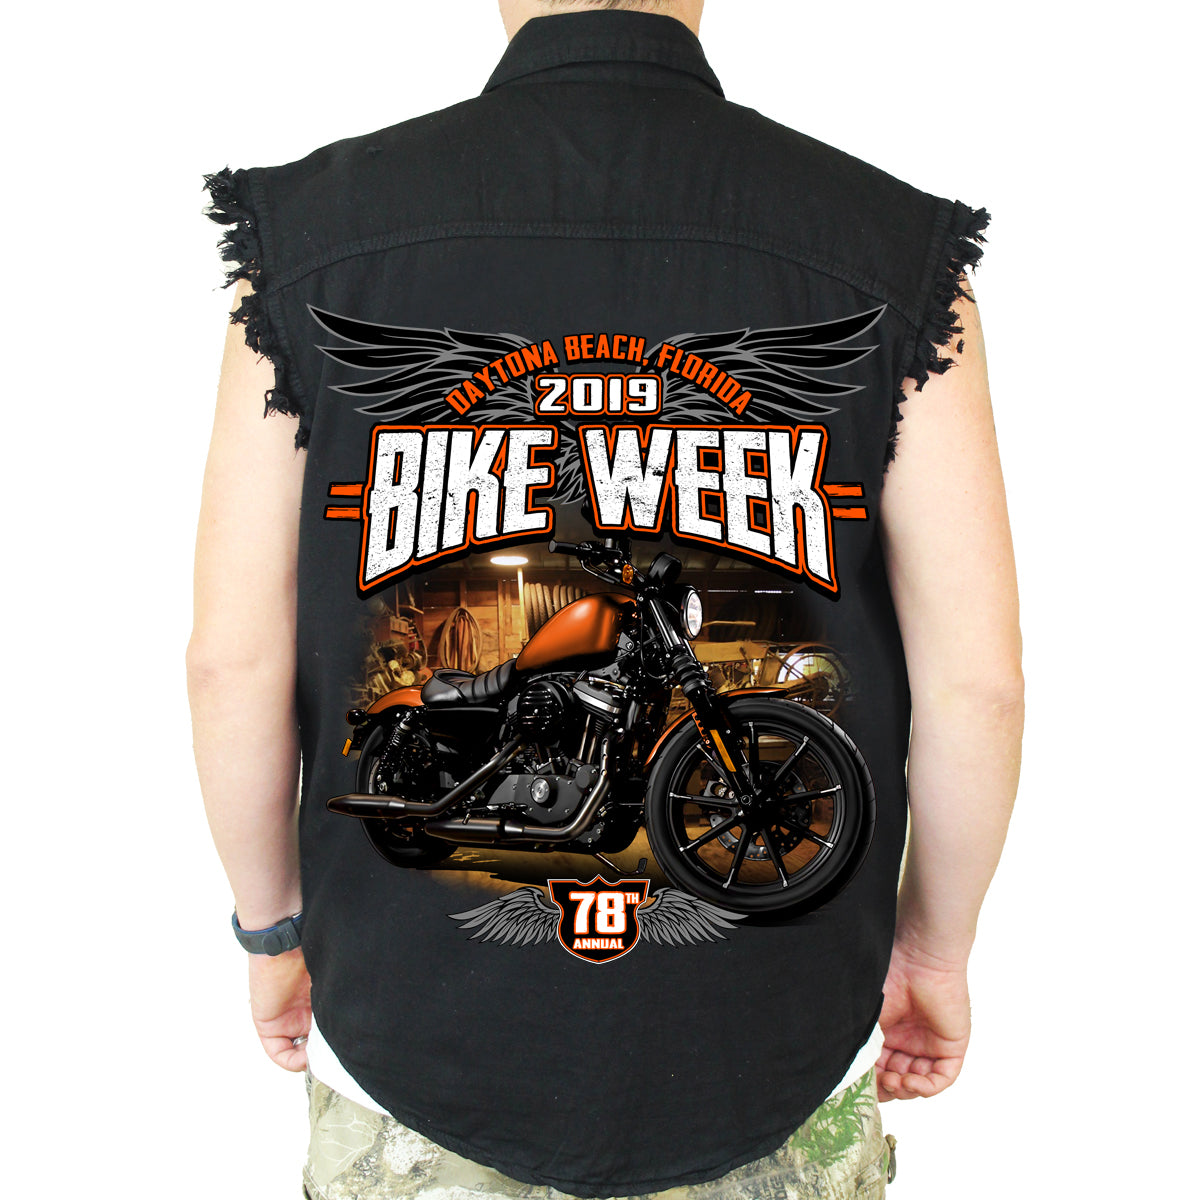 3219b7549a 2019 Bike Week Daytona Beach Dark Side Cut-Off Denim – Biker Life ...